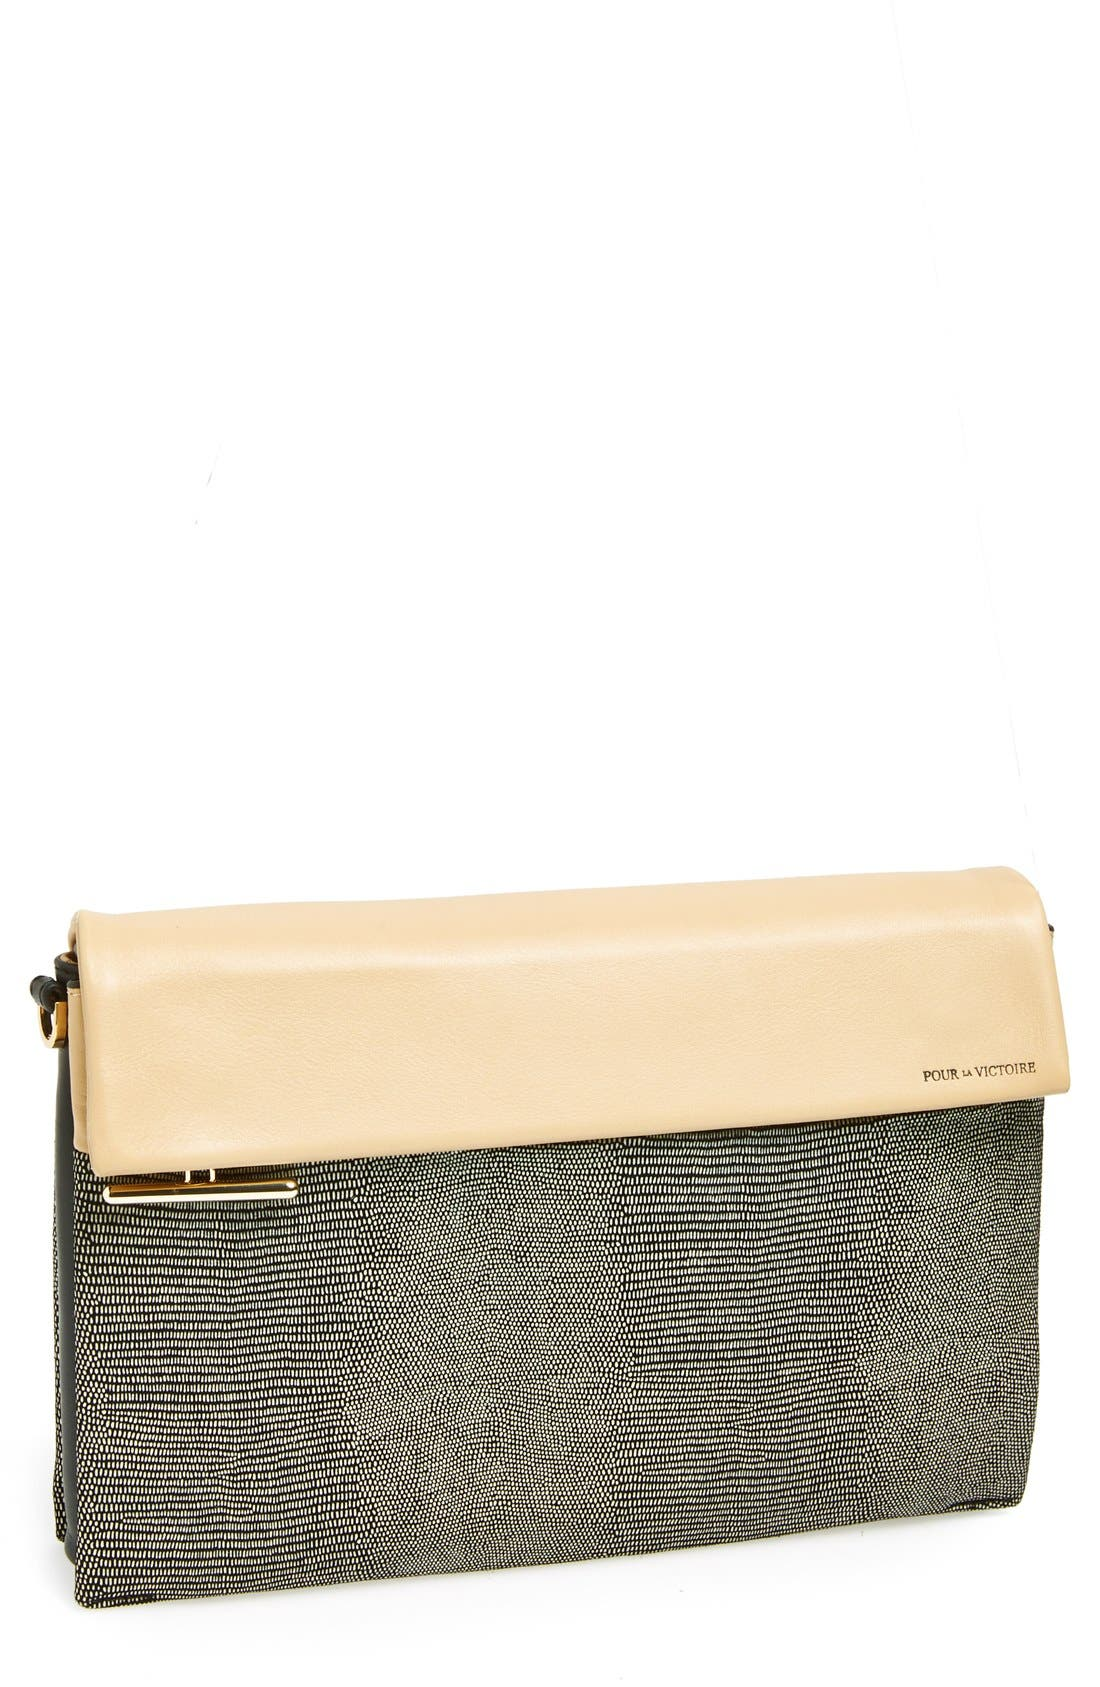 Alternate Image 1 Selected - Pour la Victoire Convertible Clutch